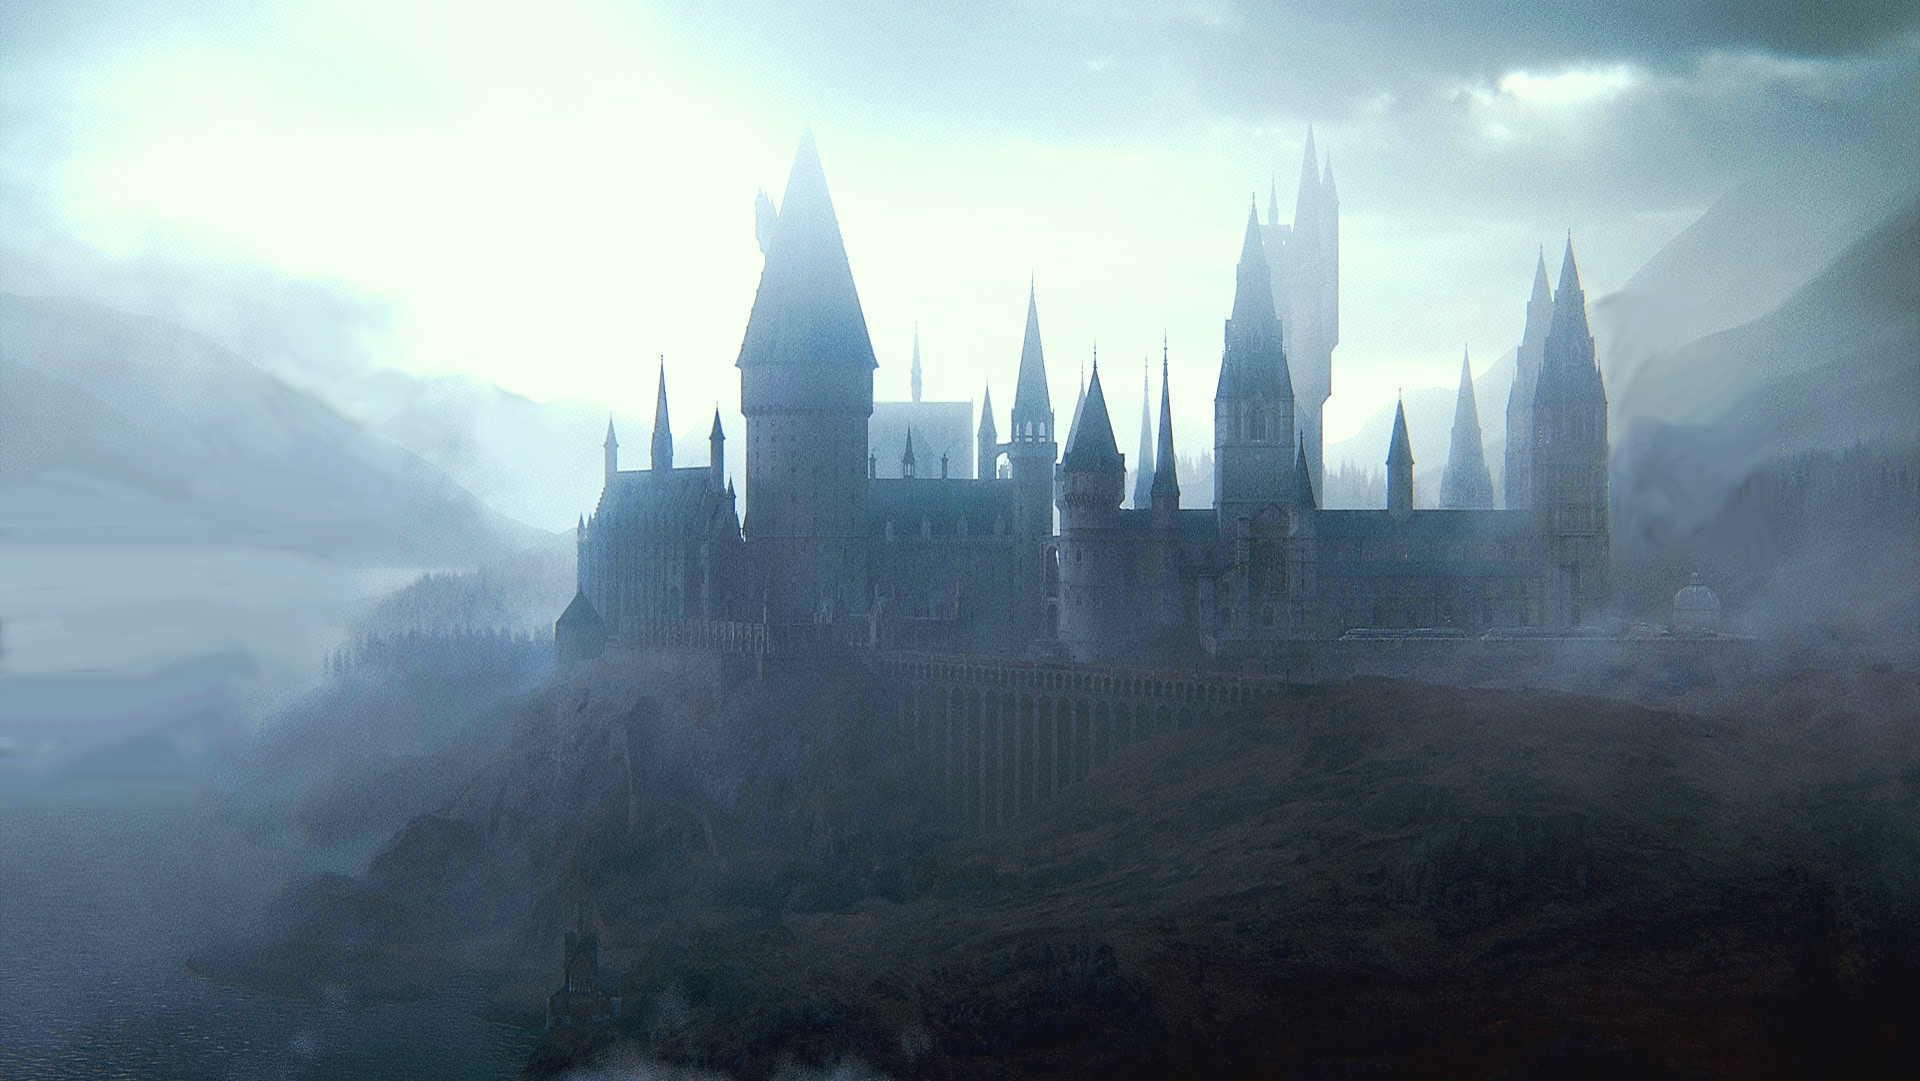 hogwarts desktop wallpaper - photo #14